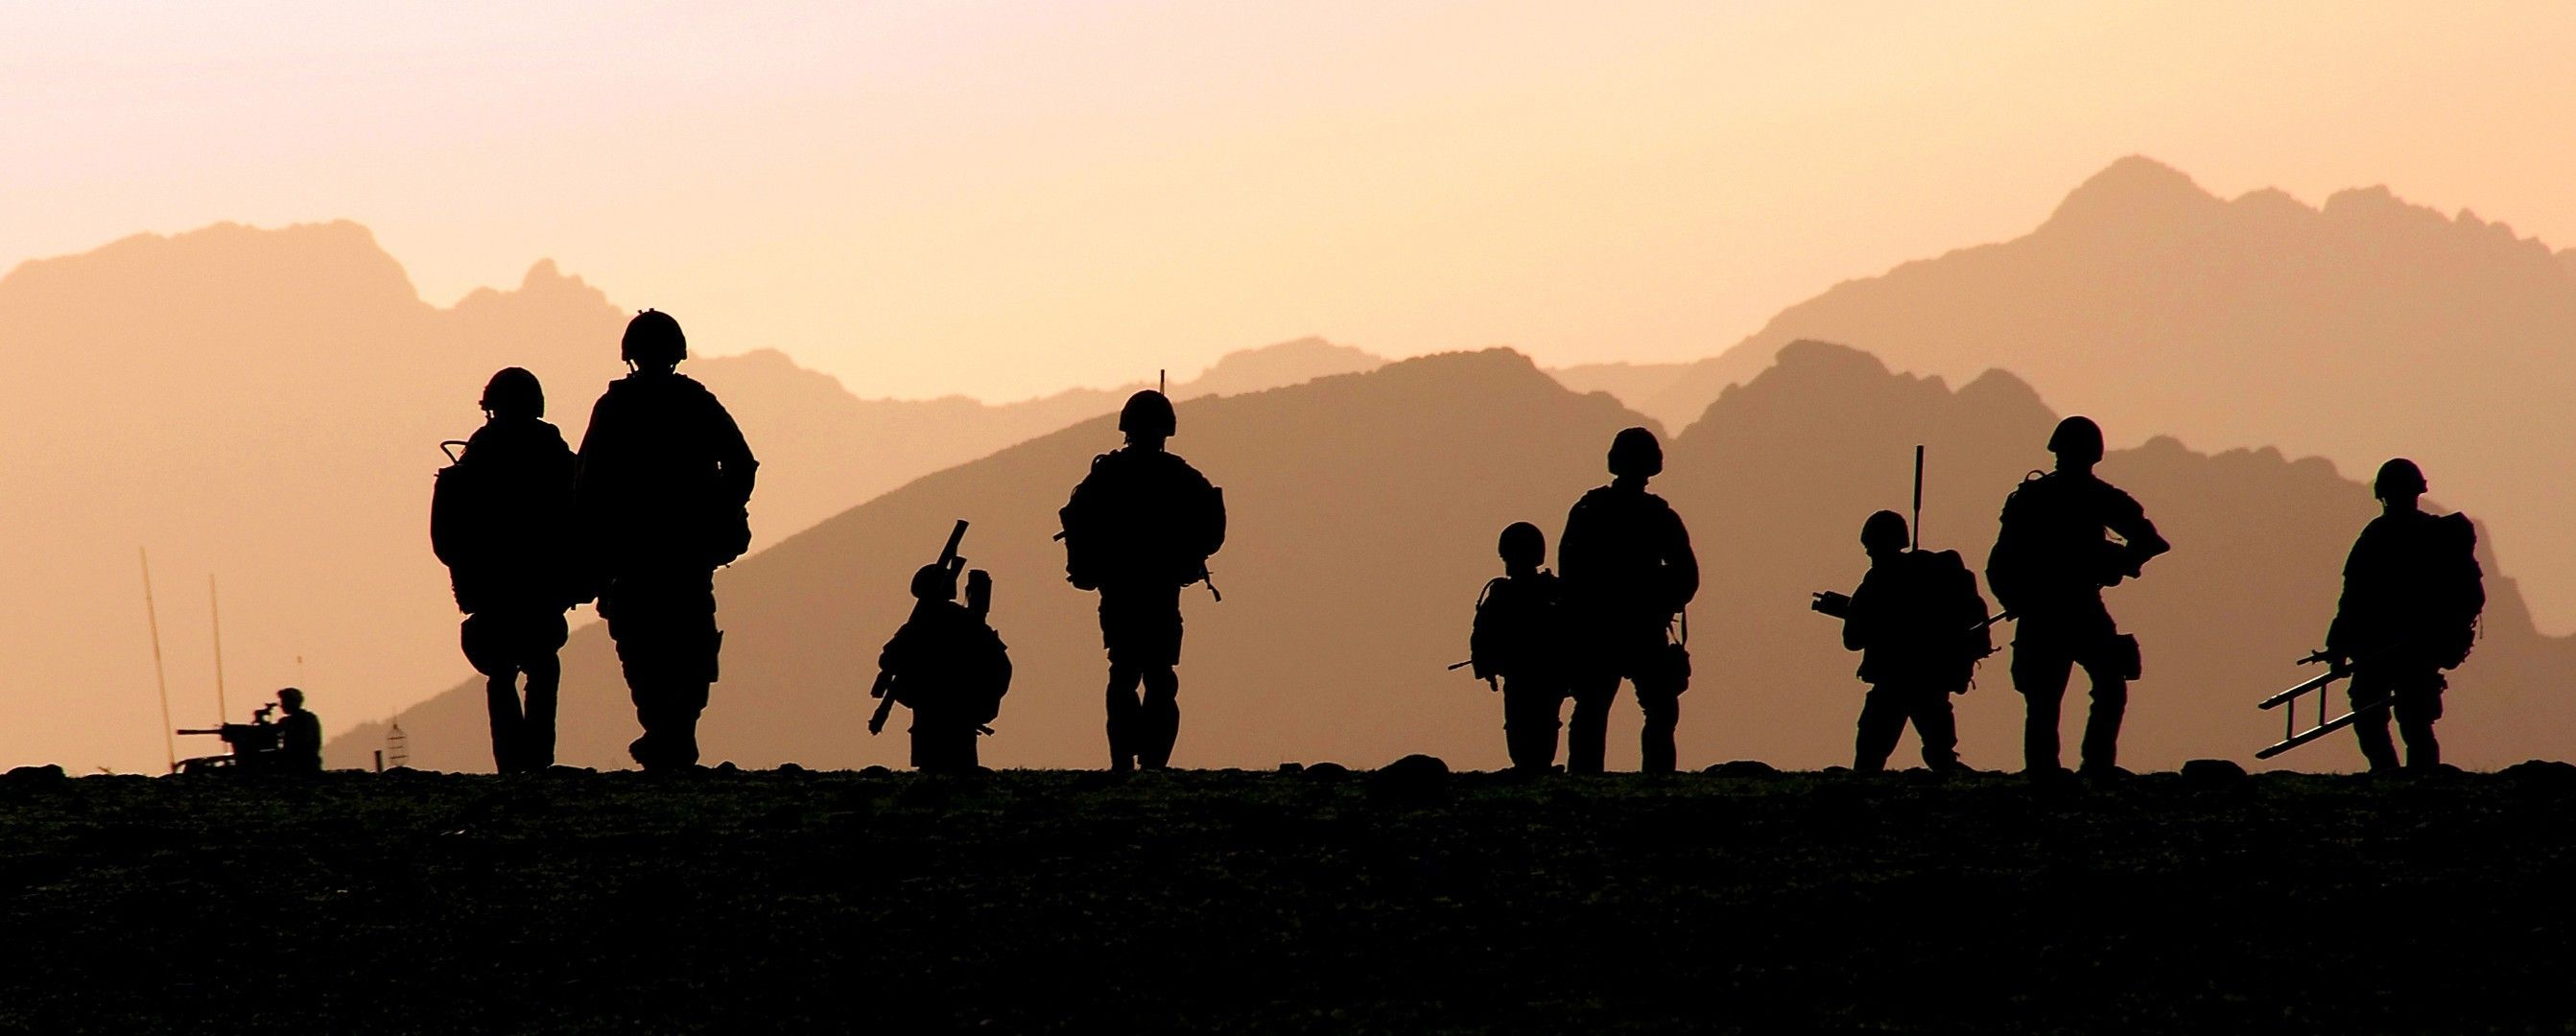 2685x1080 military, Silhouette, Royal Marines Wallpapers HD ...